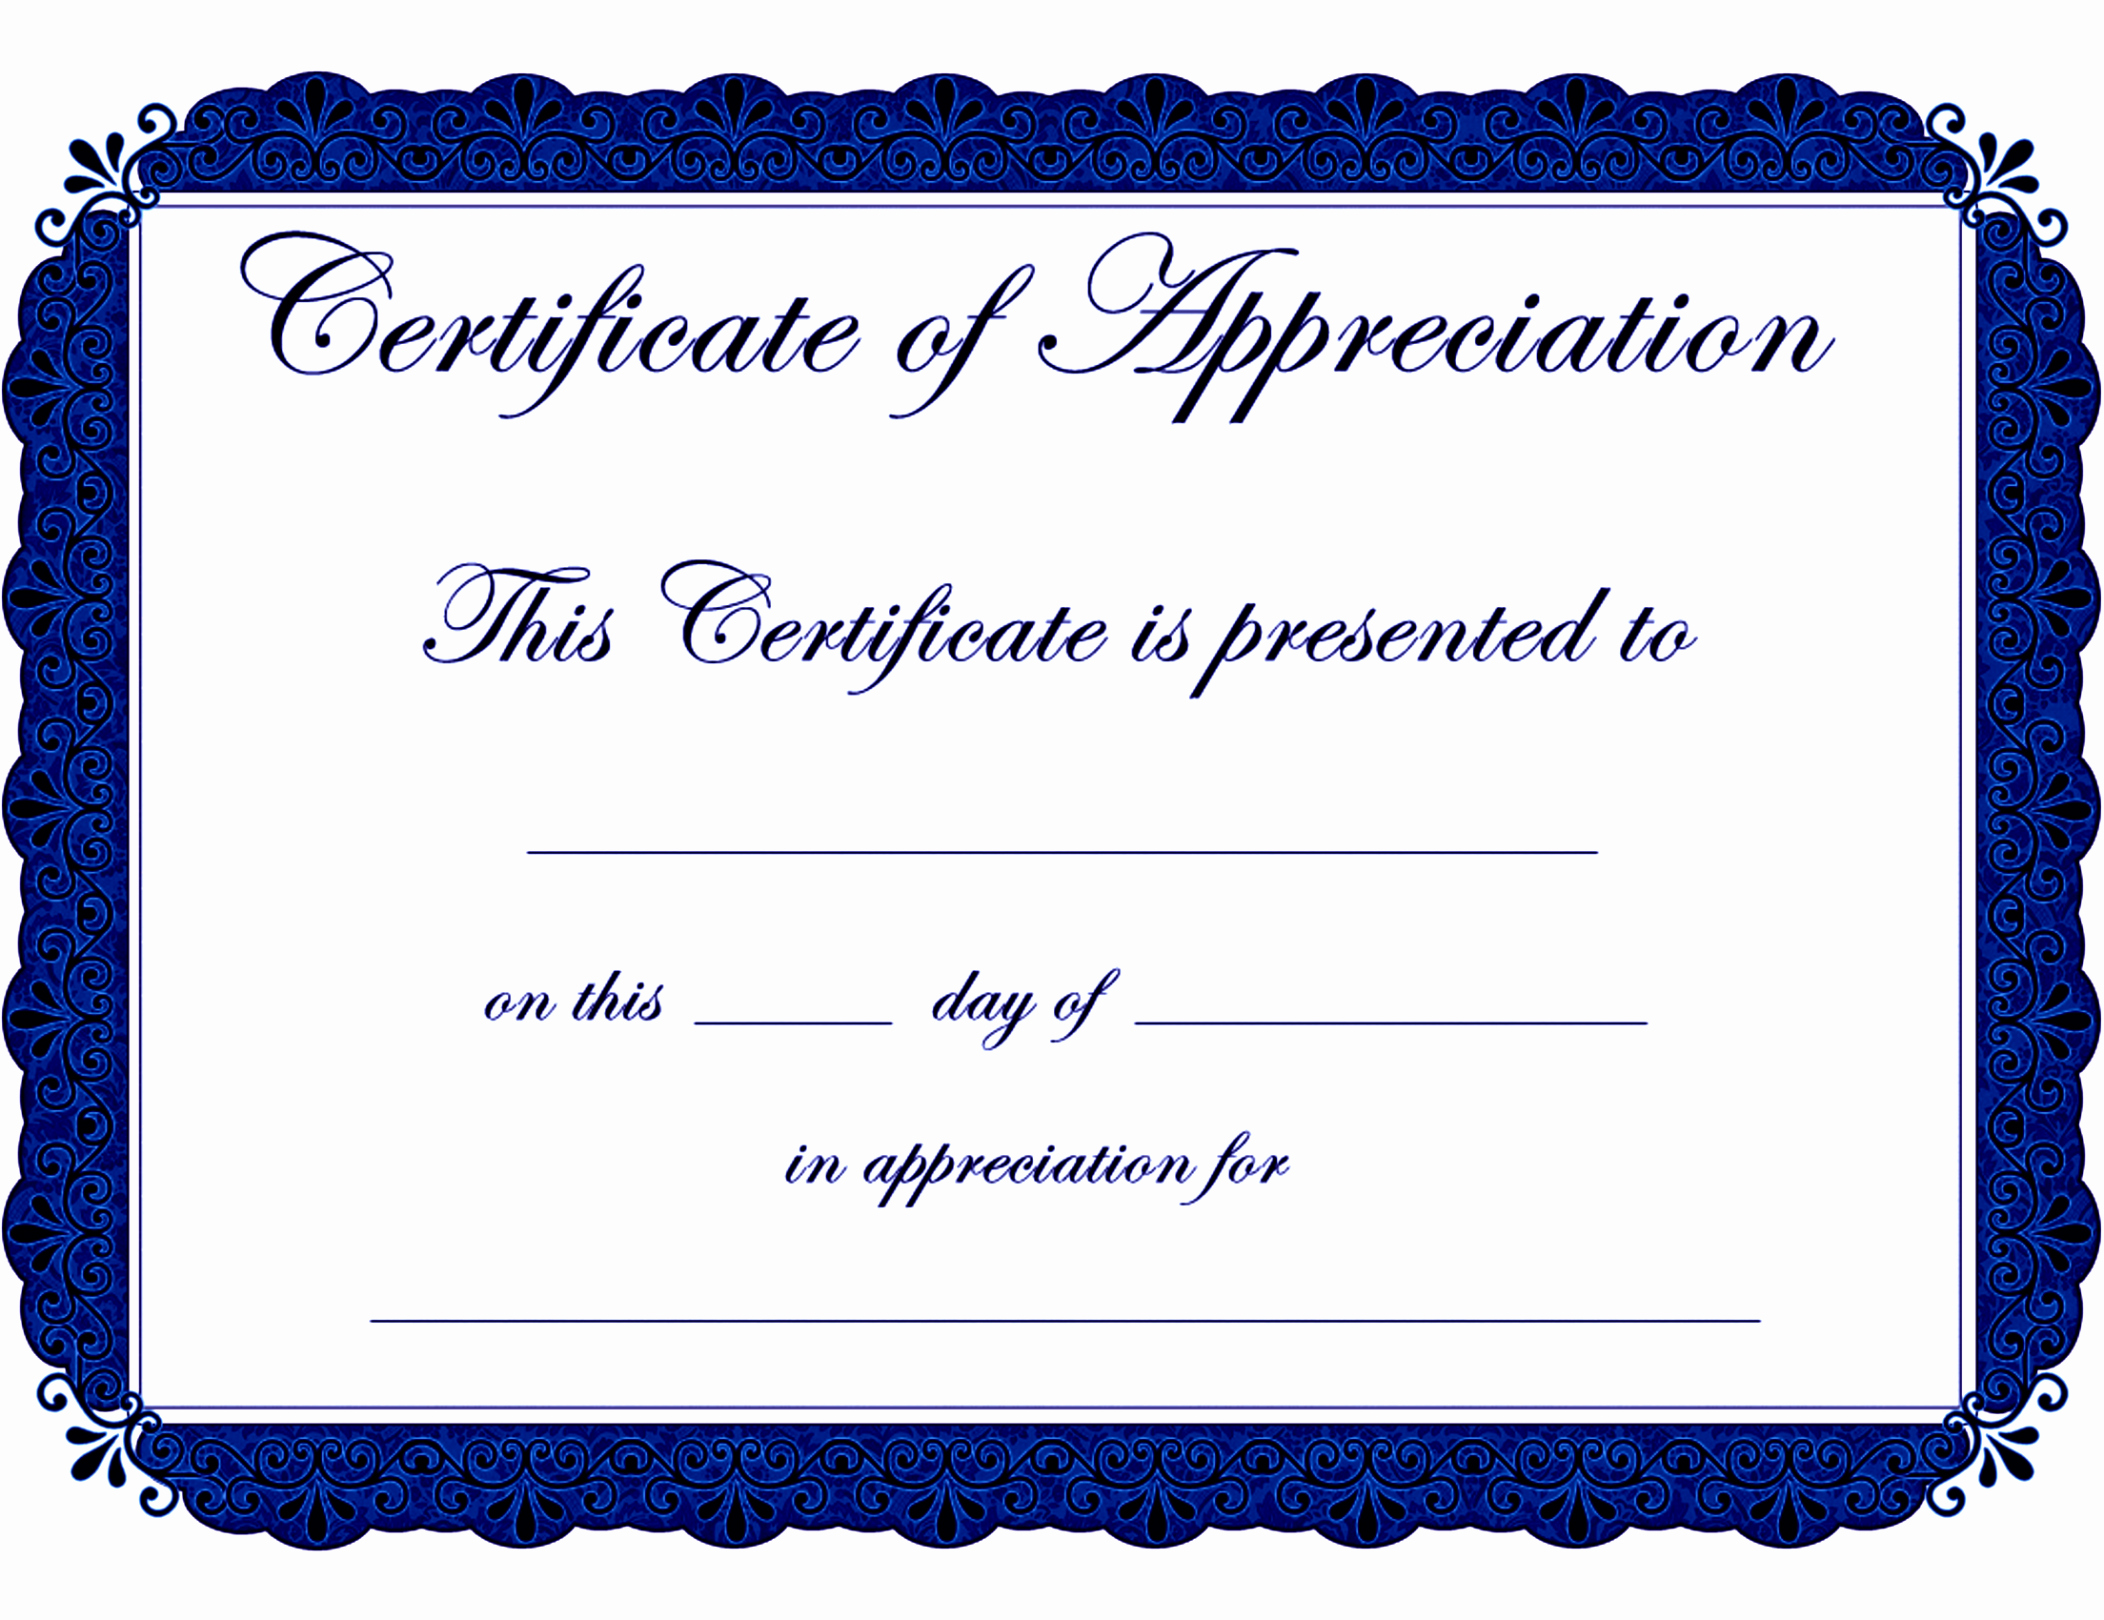 Certificate Of Appreciation for Students Inspirational Certificate Of Appreciation Template Word Free